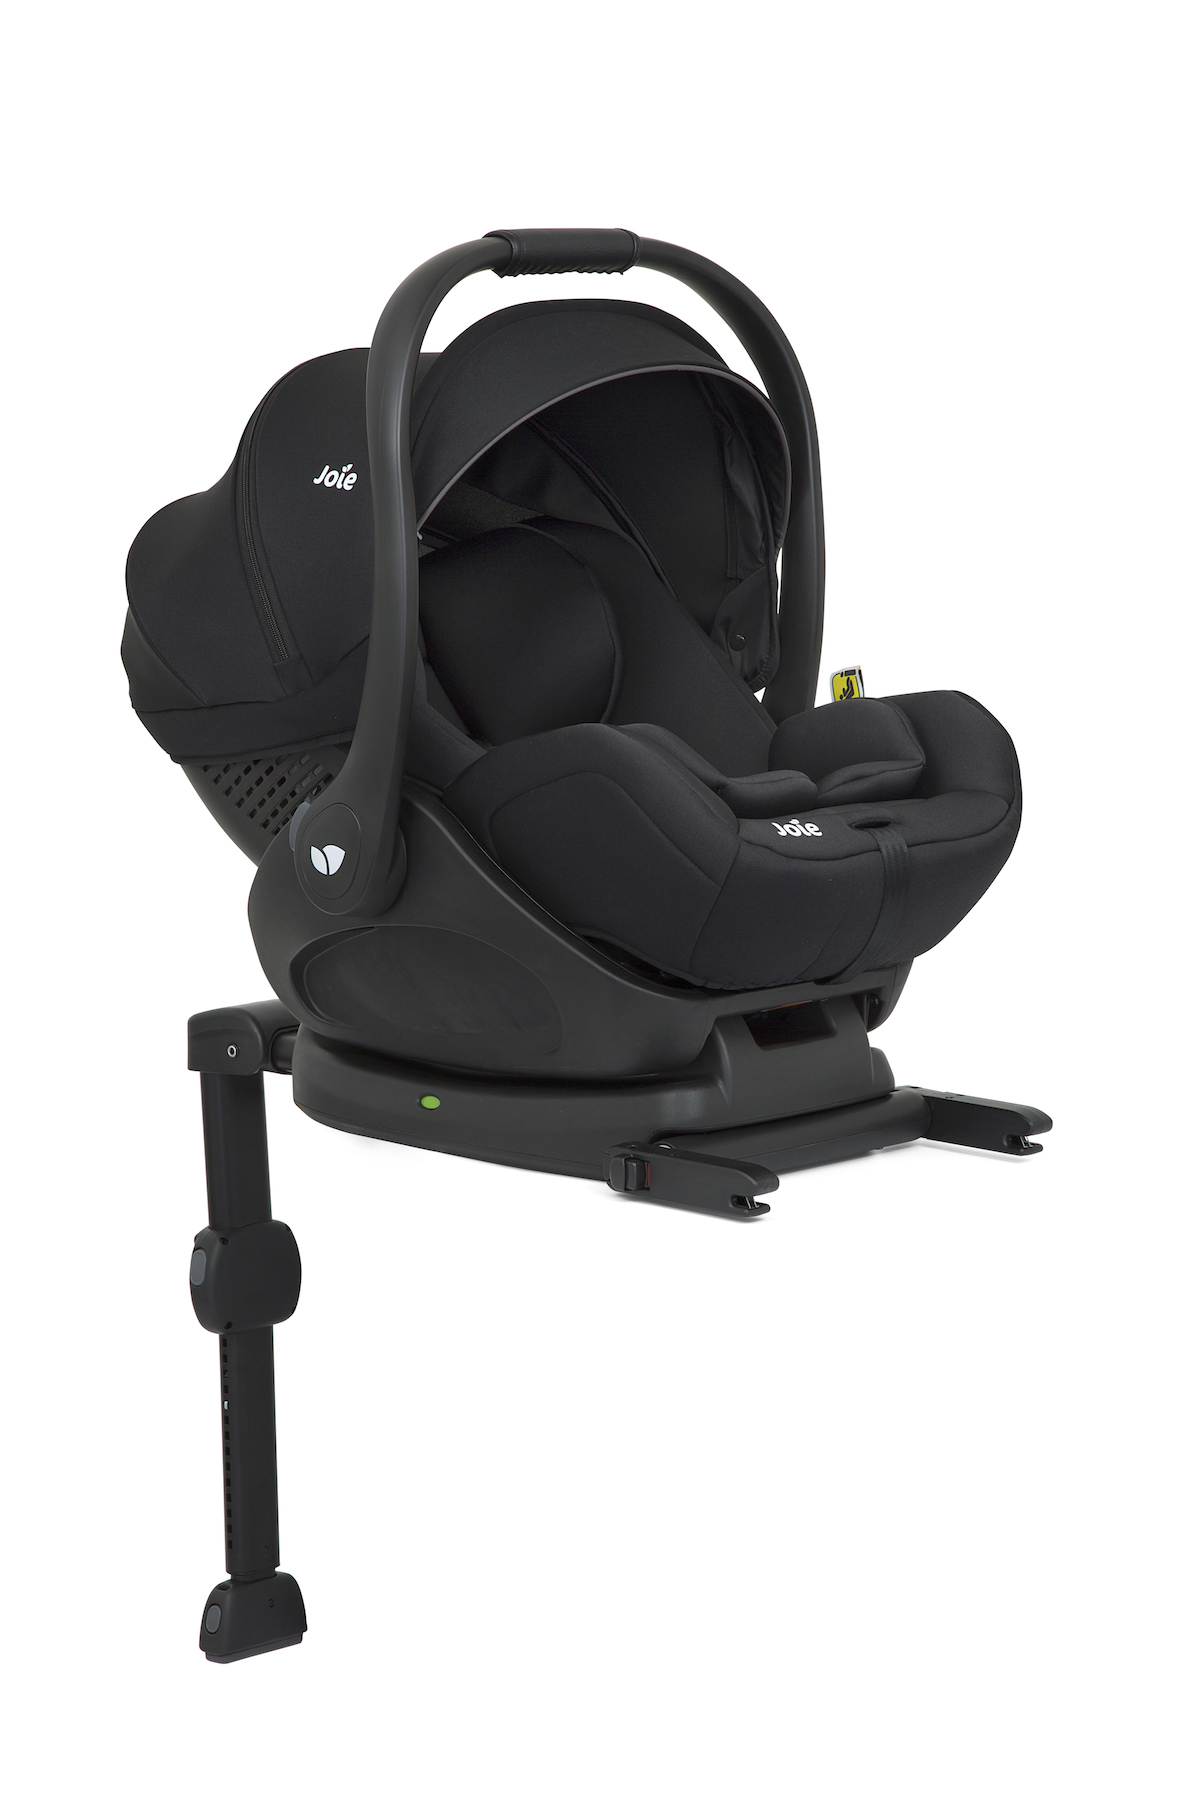 Joie i-Level Babyschale inkl. i-Base LX - Kollektion 2020